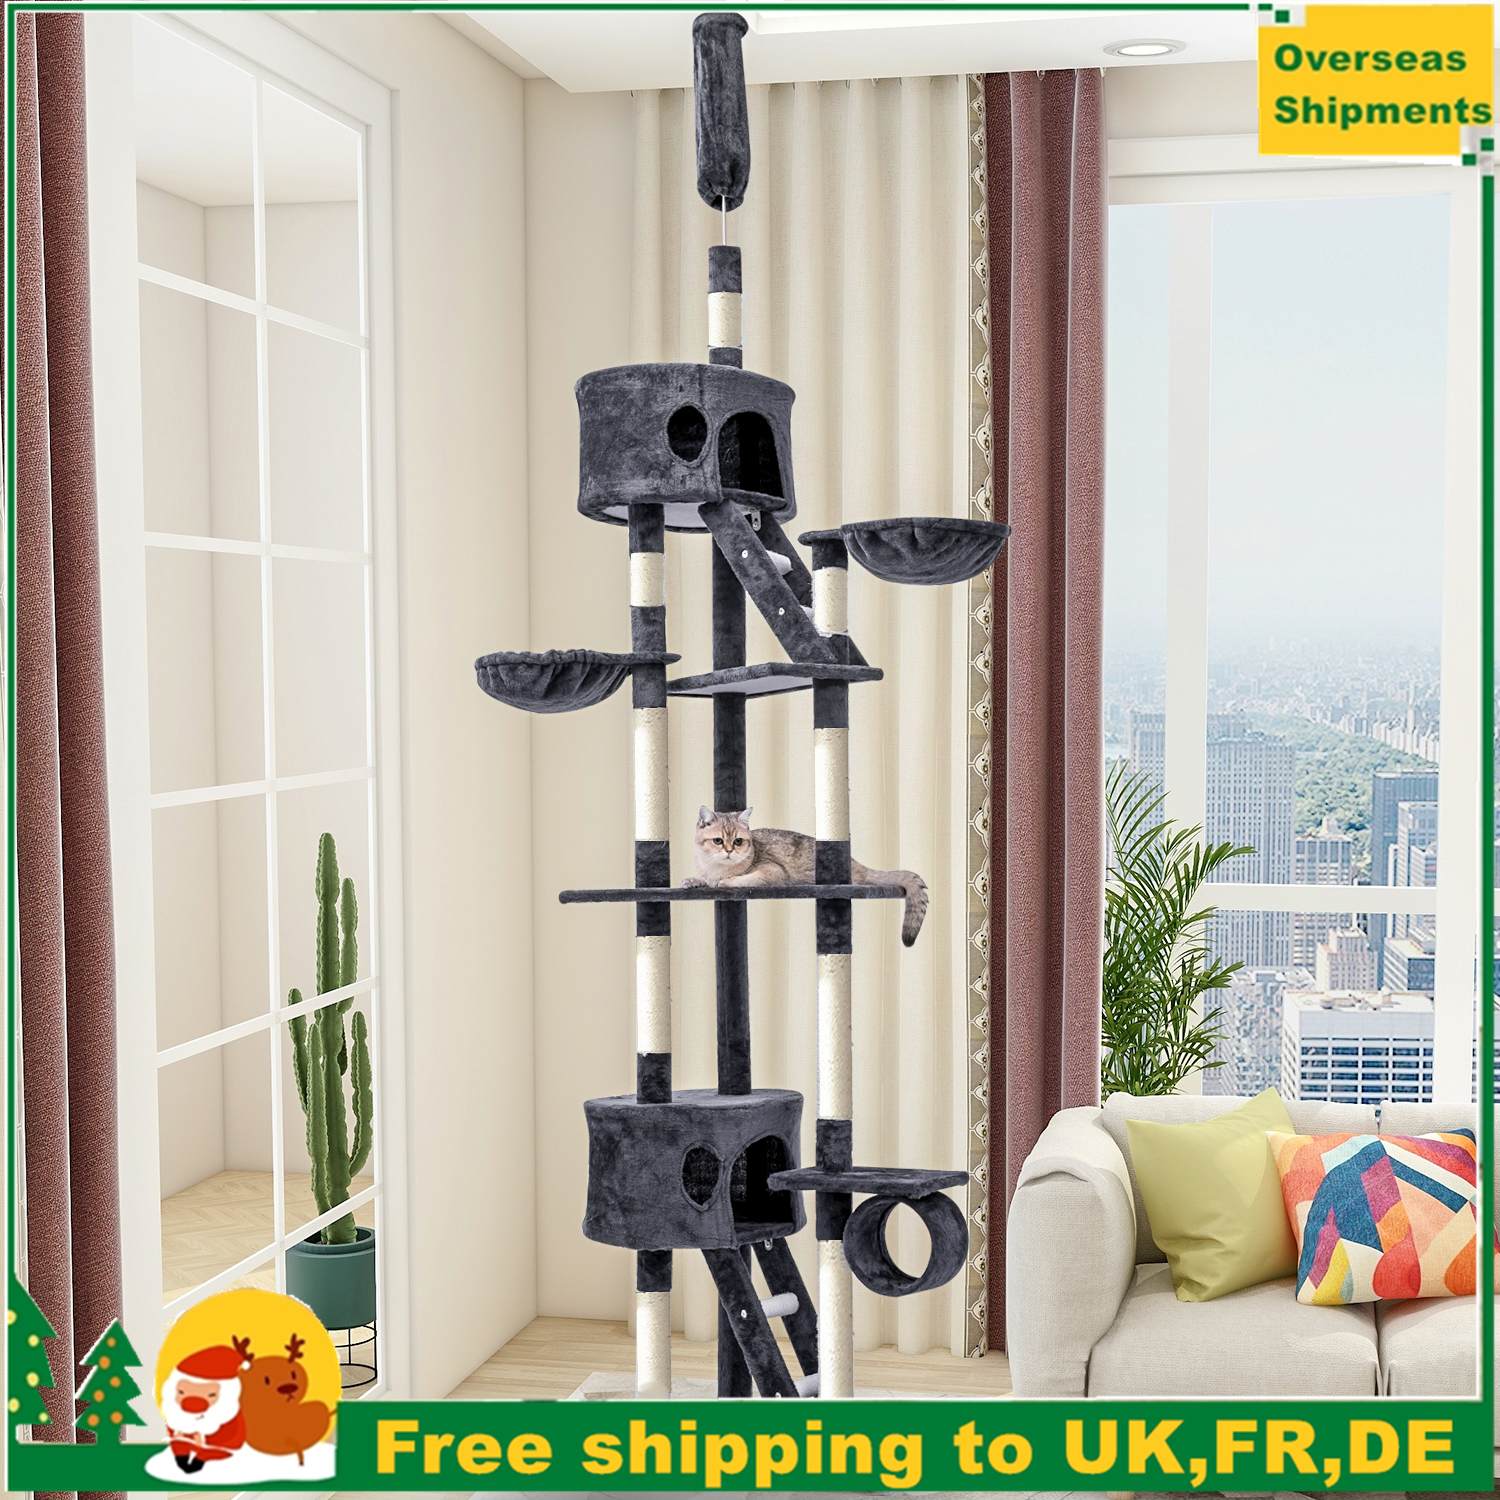 240-260cm Domestic Shipment Multi-Level <font><b>Large</b></font> <font><b>Cat</b></font> <font><b>Tree</b></font> Scratching Post Activity Centre Climbing Tower Top Post Adjustable Board image